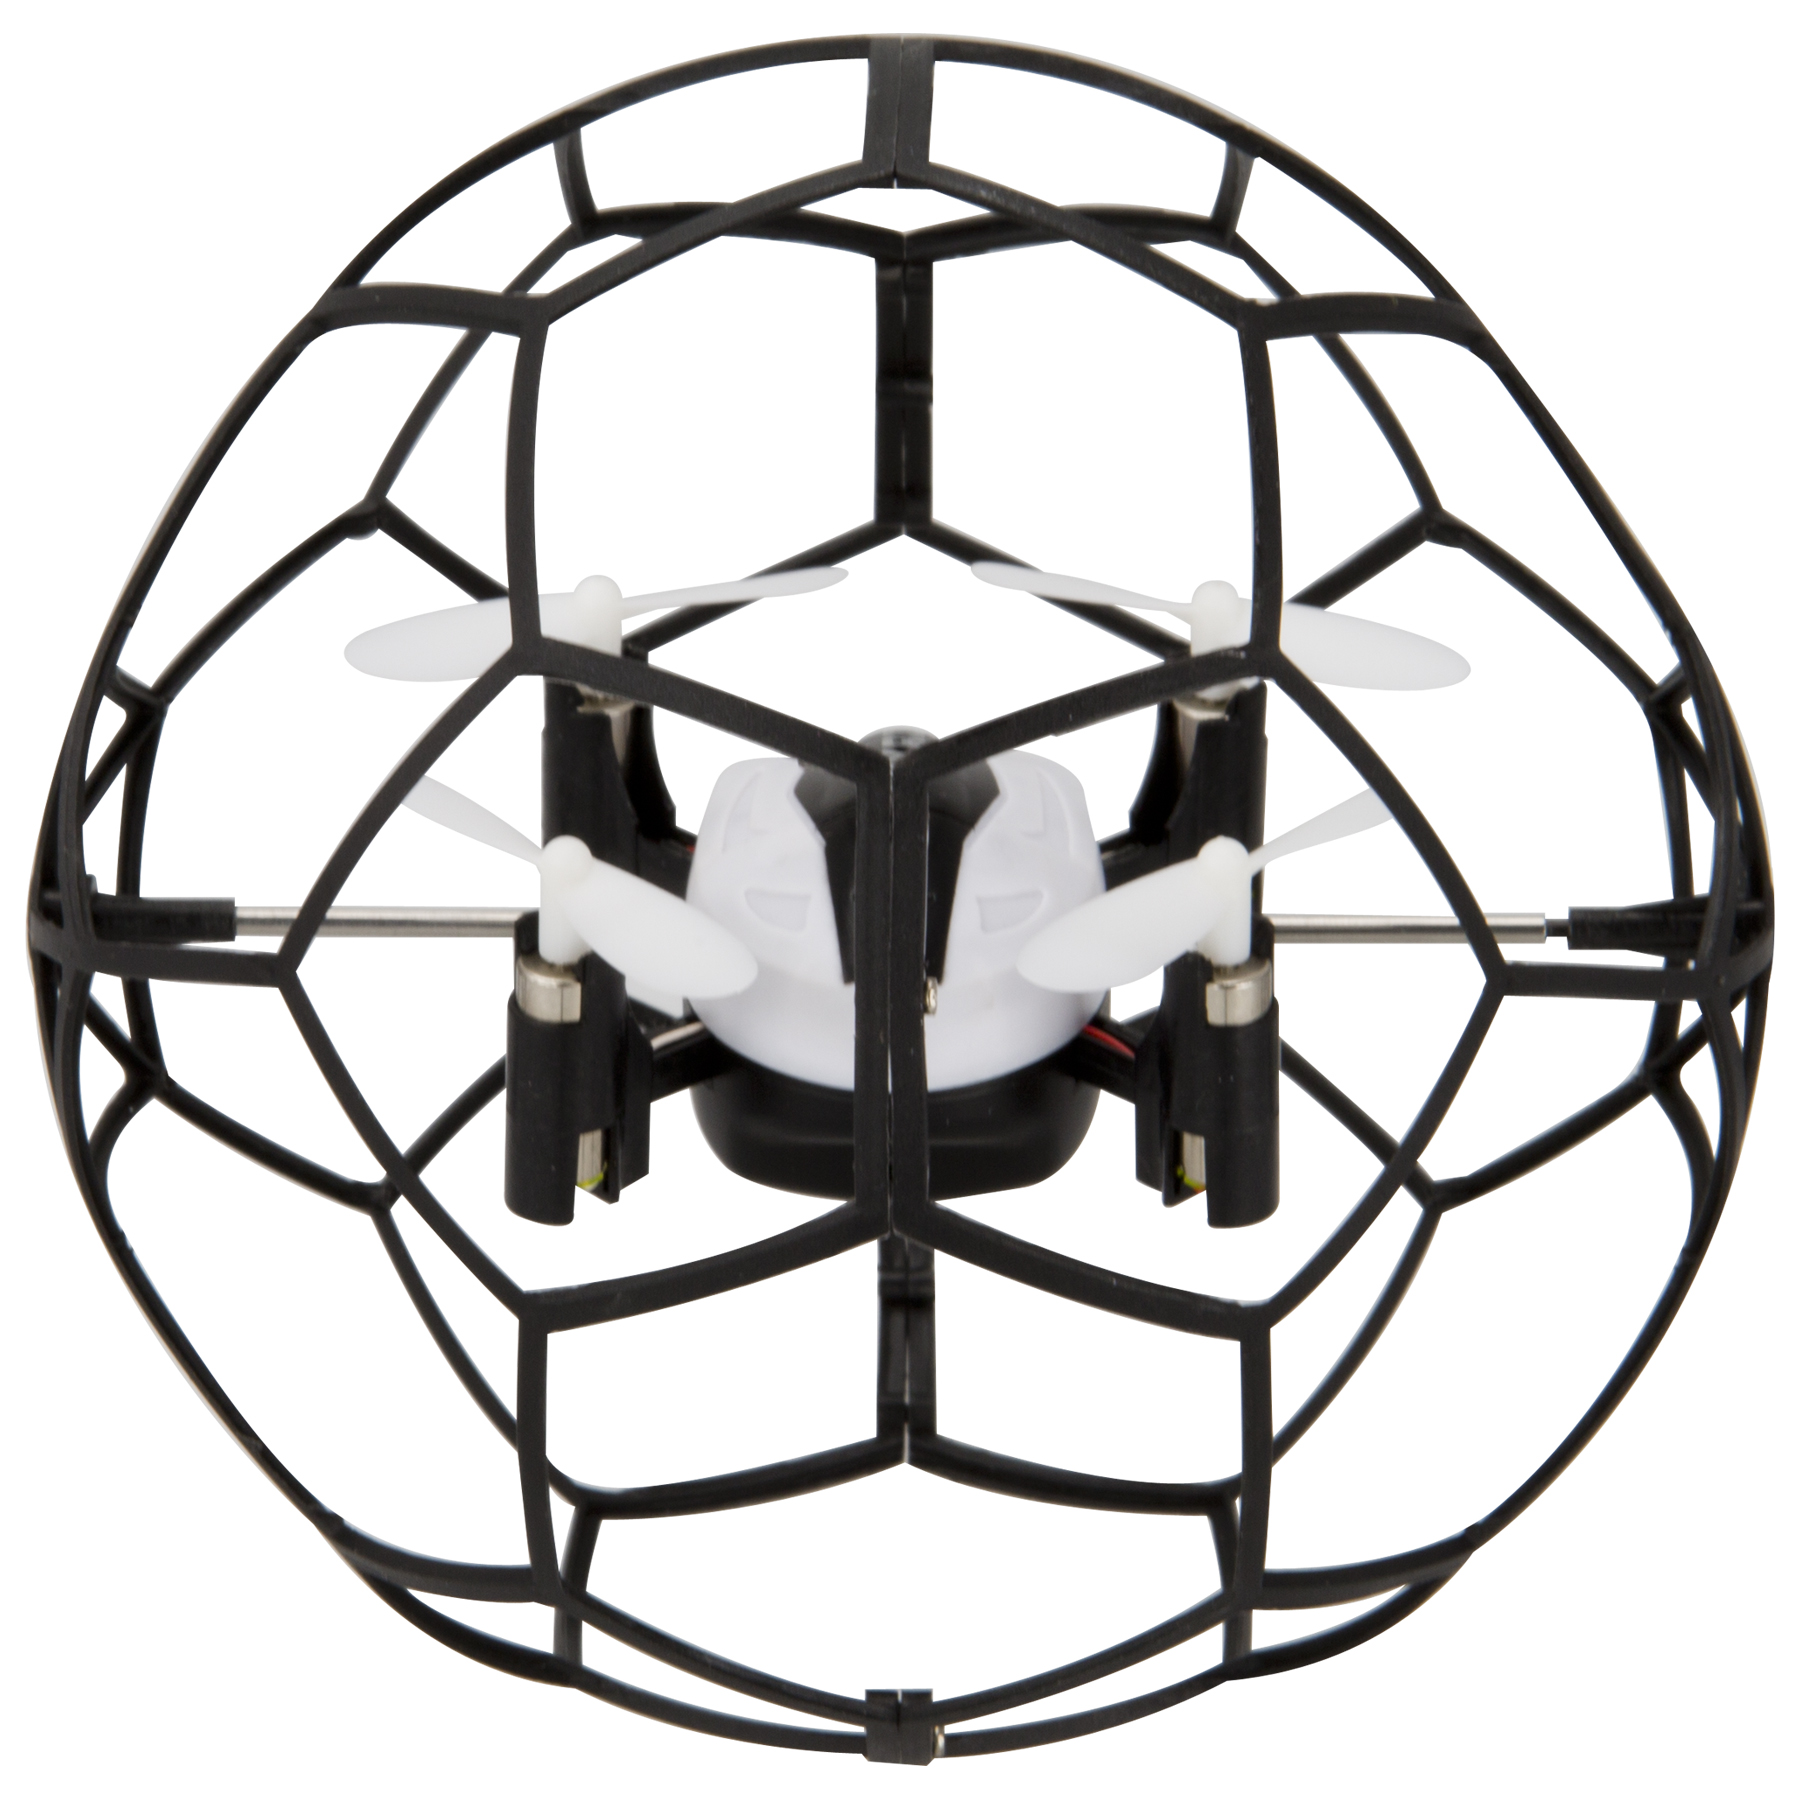 Sky Rider Hummingbird Mini Drone With Cage Dr118w